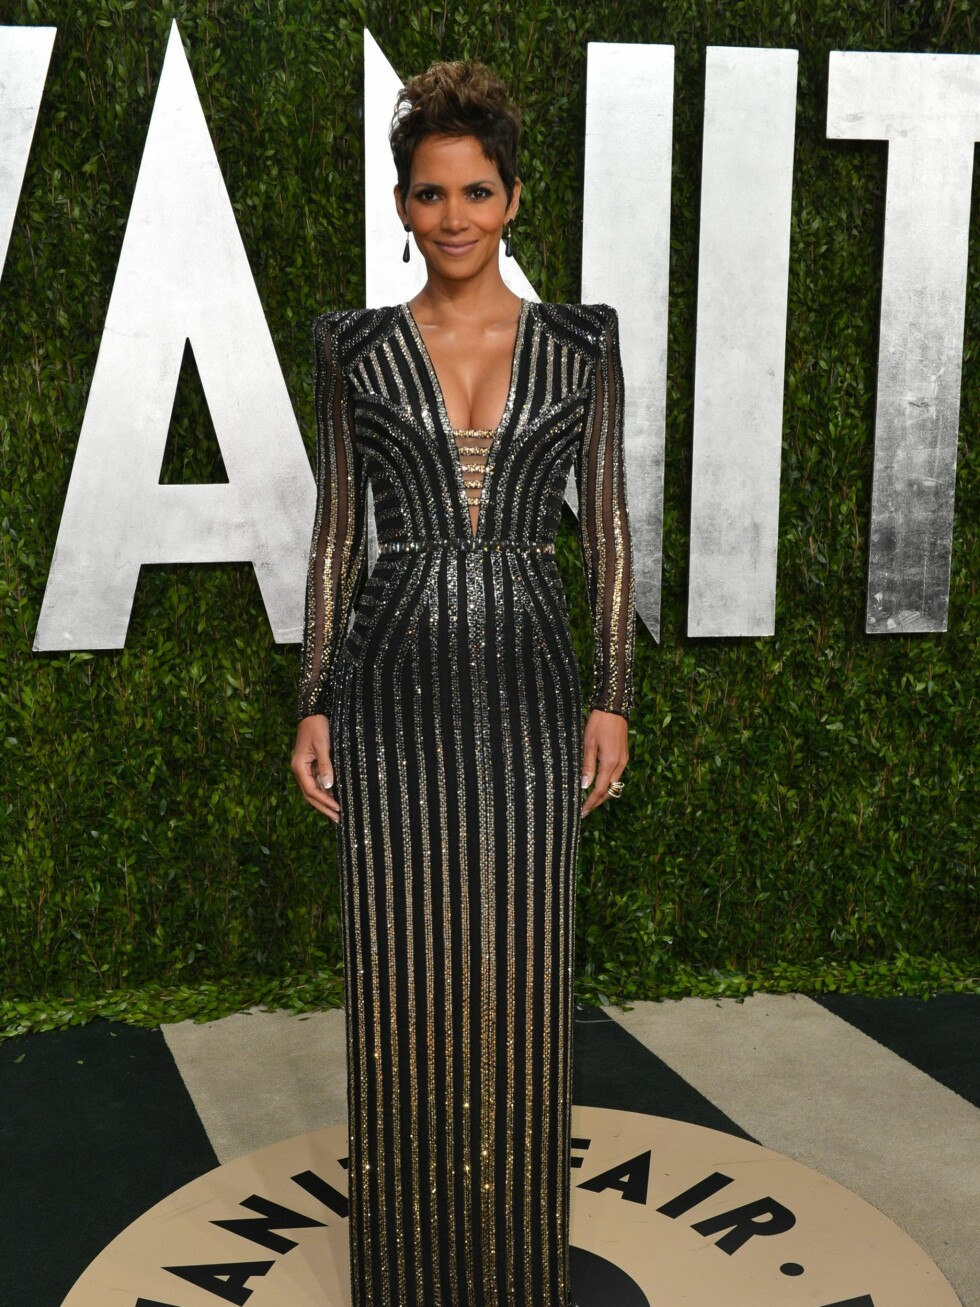 WEST HOLLYWOOD, CA - FEBRUARY 24:  Actress Halle Berry arrives at the 2013 Vanity Fair Oscar Party hosted by Graydon Carter at Sunset Tower on February 24, 2013 in West Hollywood, California.  (Photo by Alberto E. Rodriguez/WireImage) Foto: All Over Press